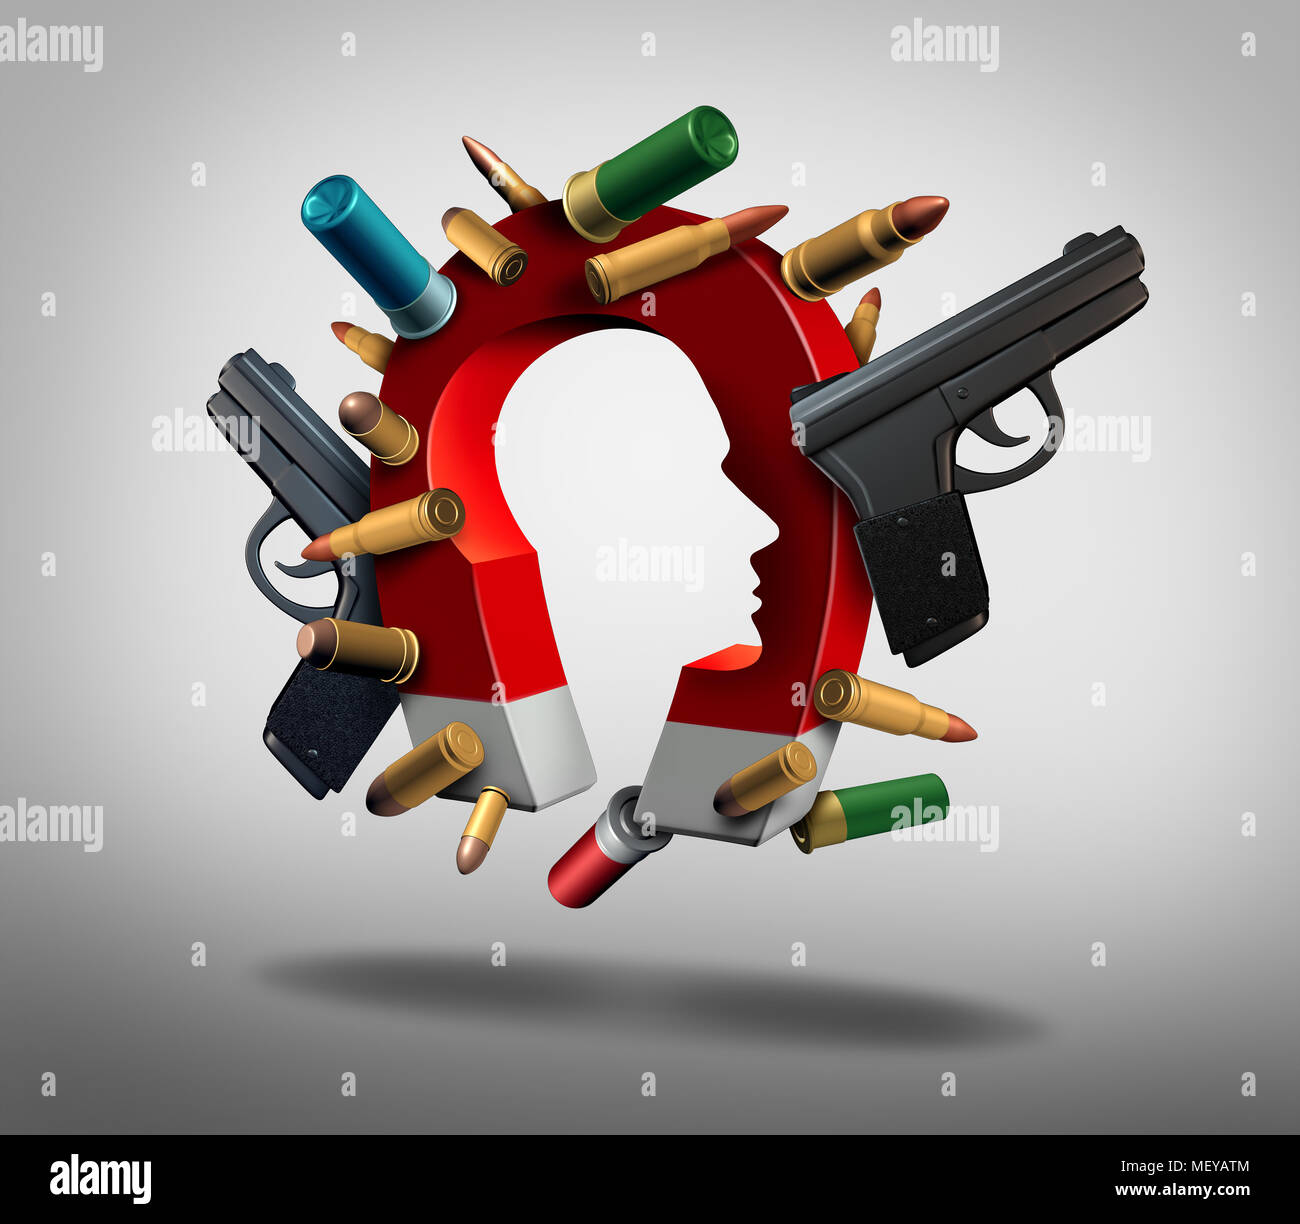 Attraction to guns and social or society security issues pertaining to the psychology of people and firearms and gun culture as a 3D illustration. - Stock Image